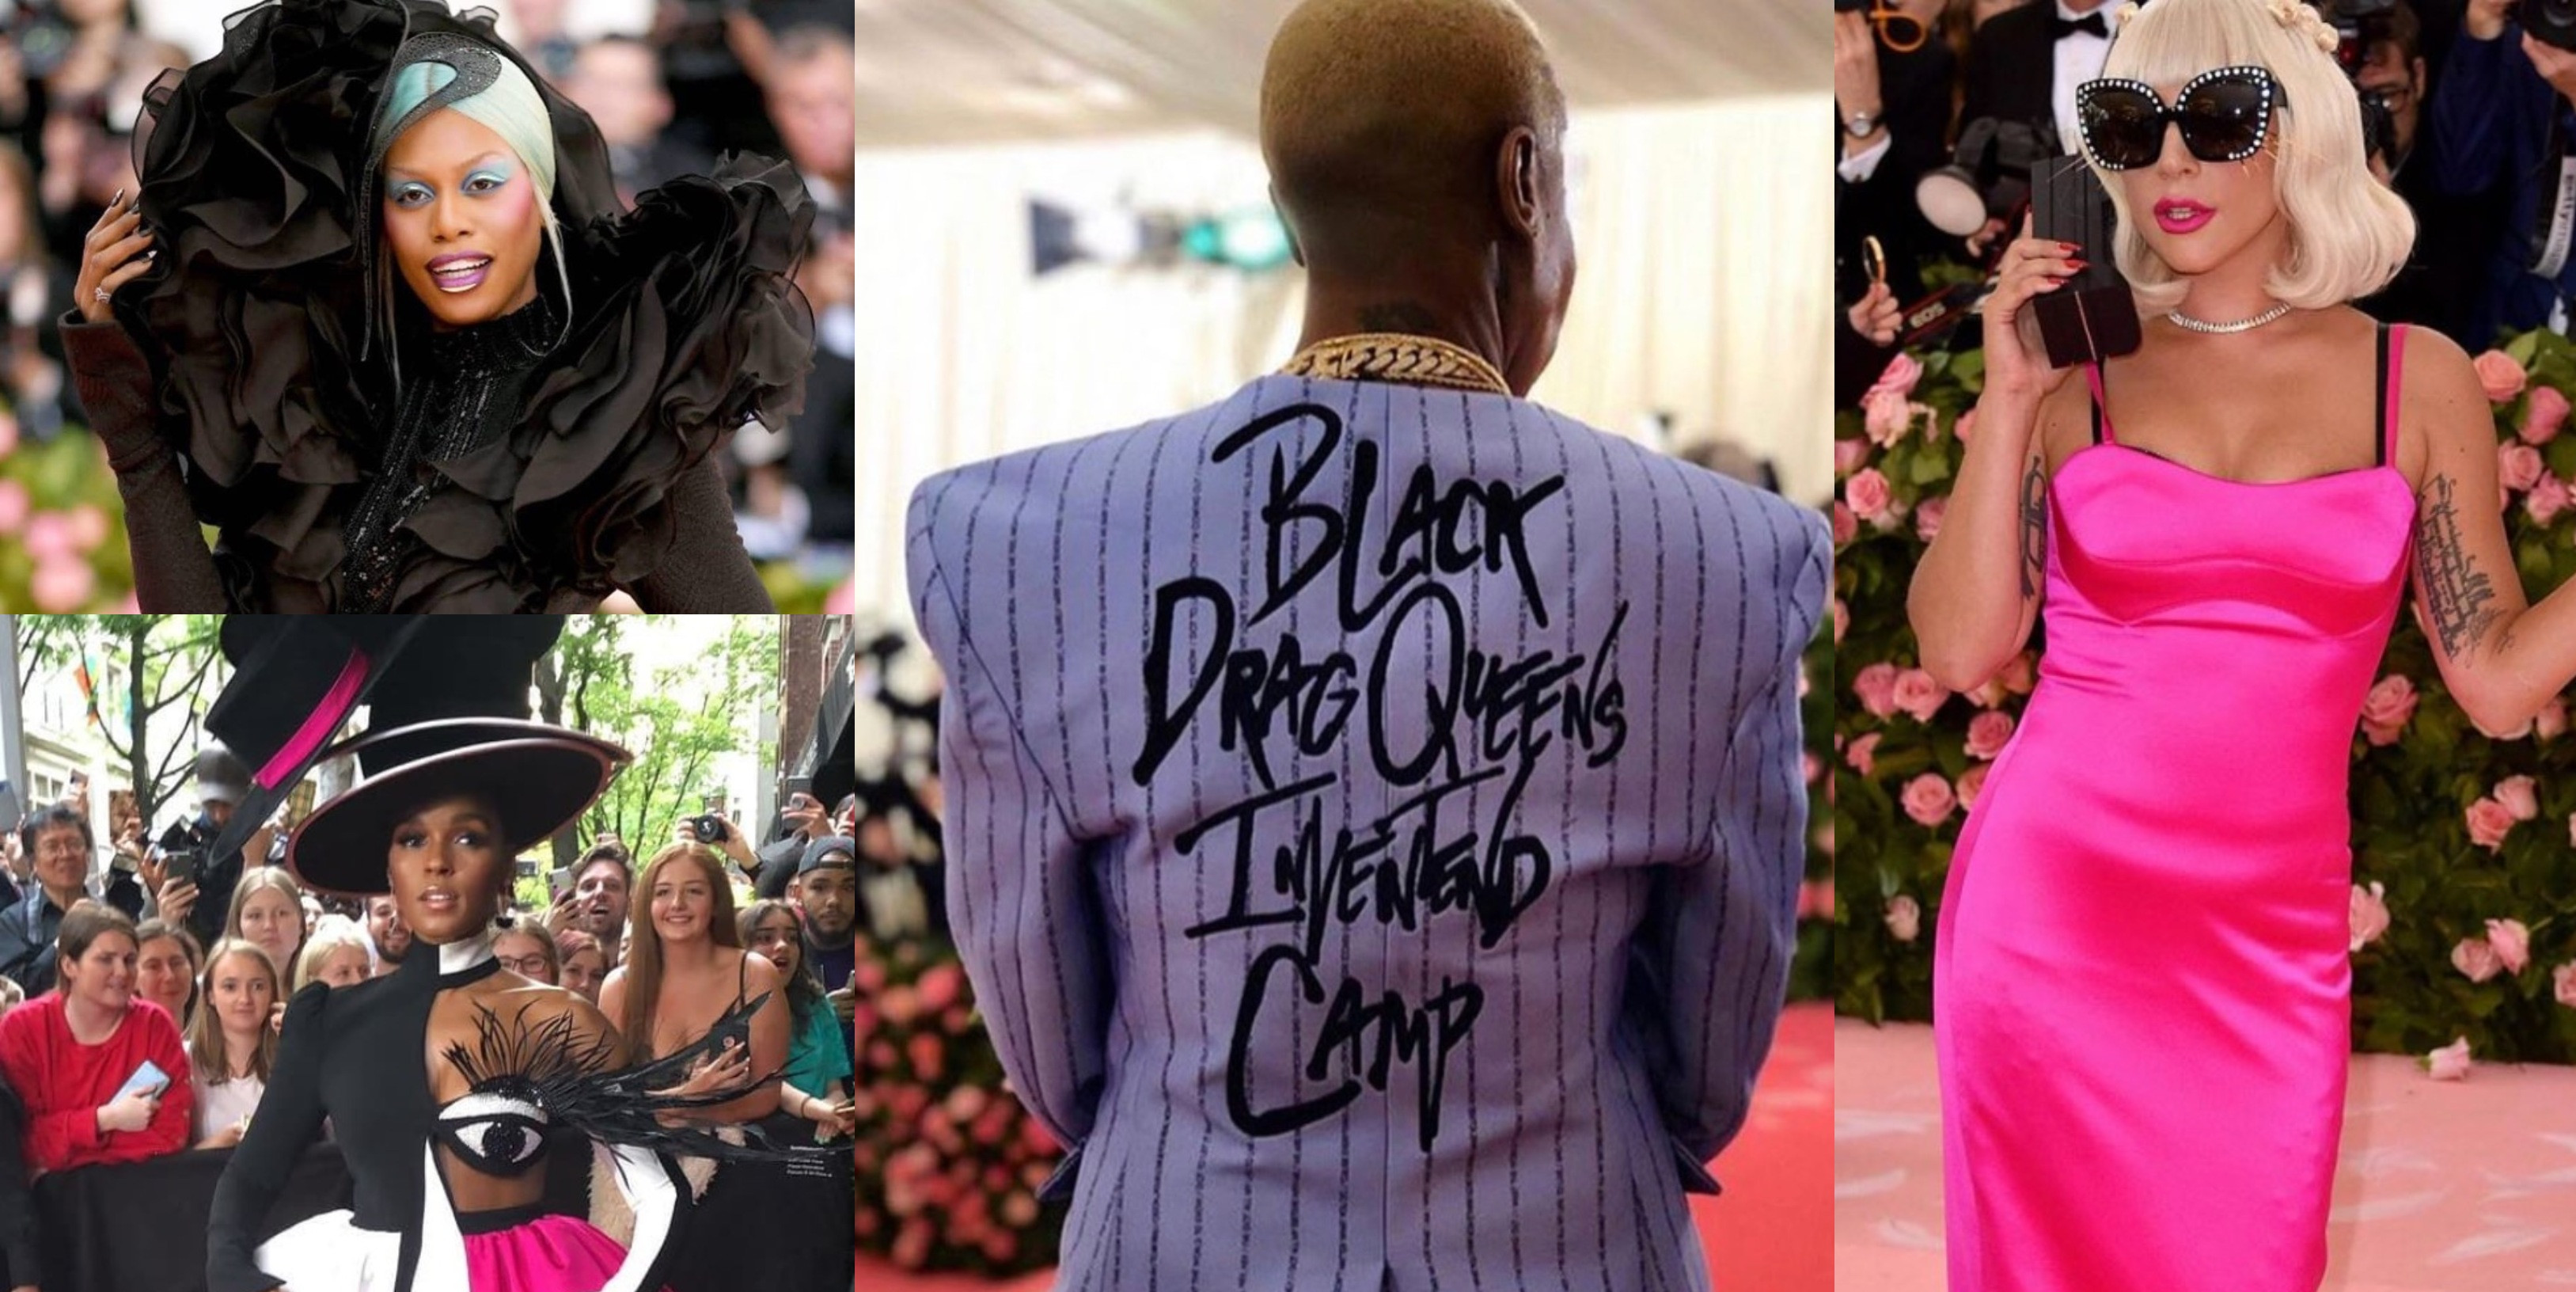 56 Fave Met Gala Looks Plus Notes On Camp Autostraddle